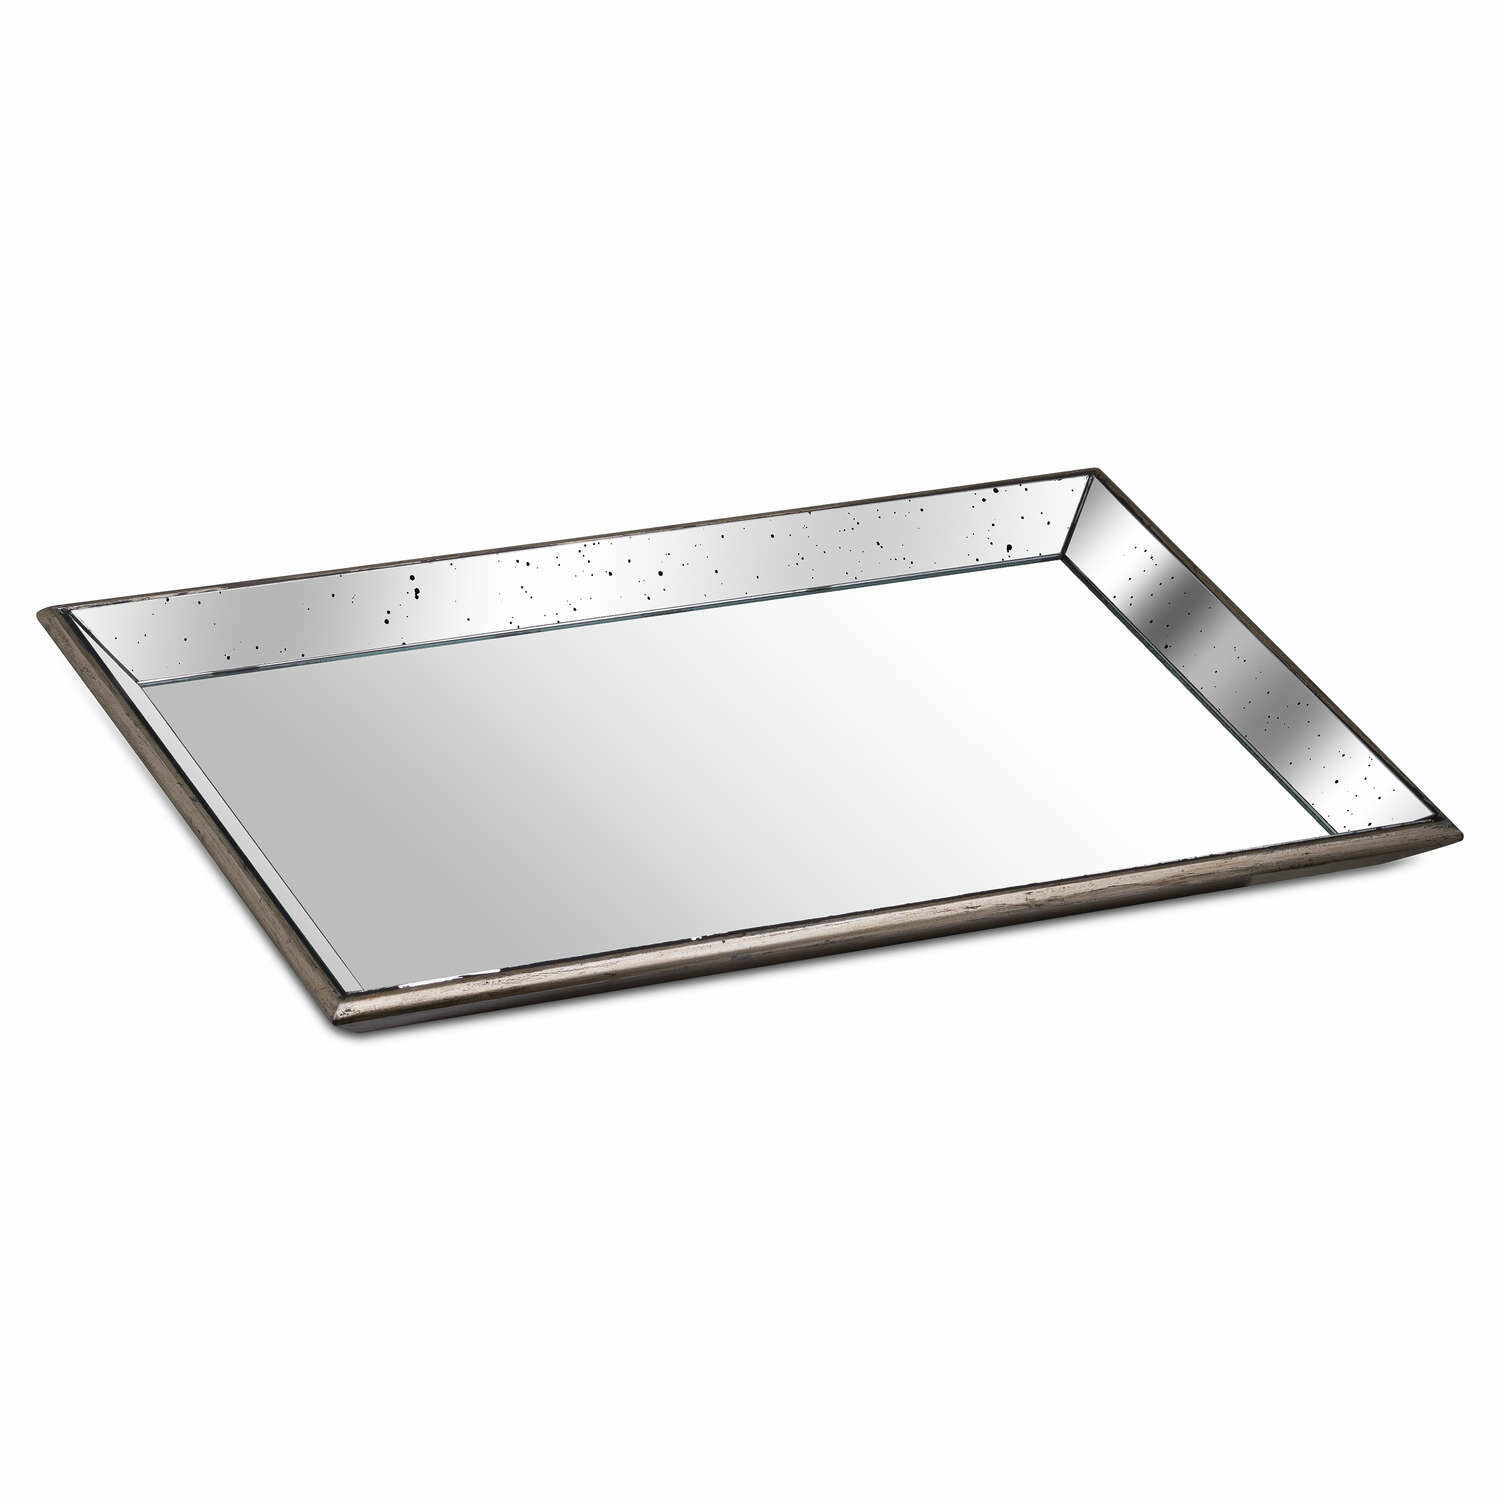 Distressed Mirrored Tray with wooden base